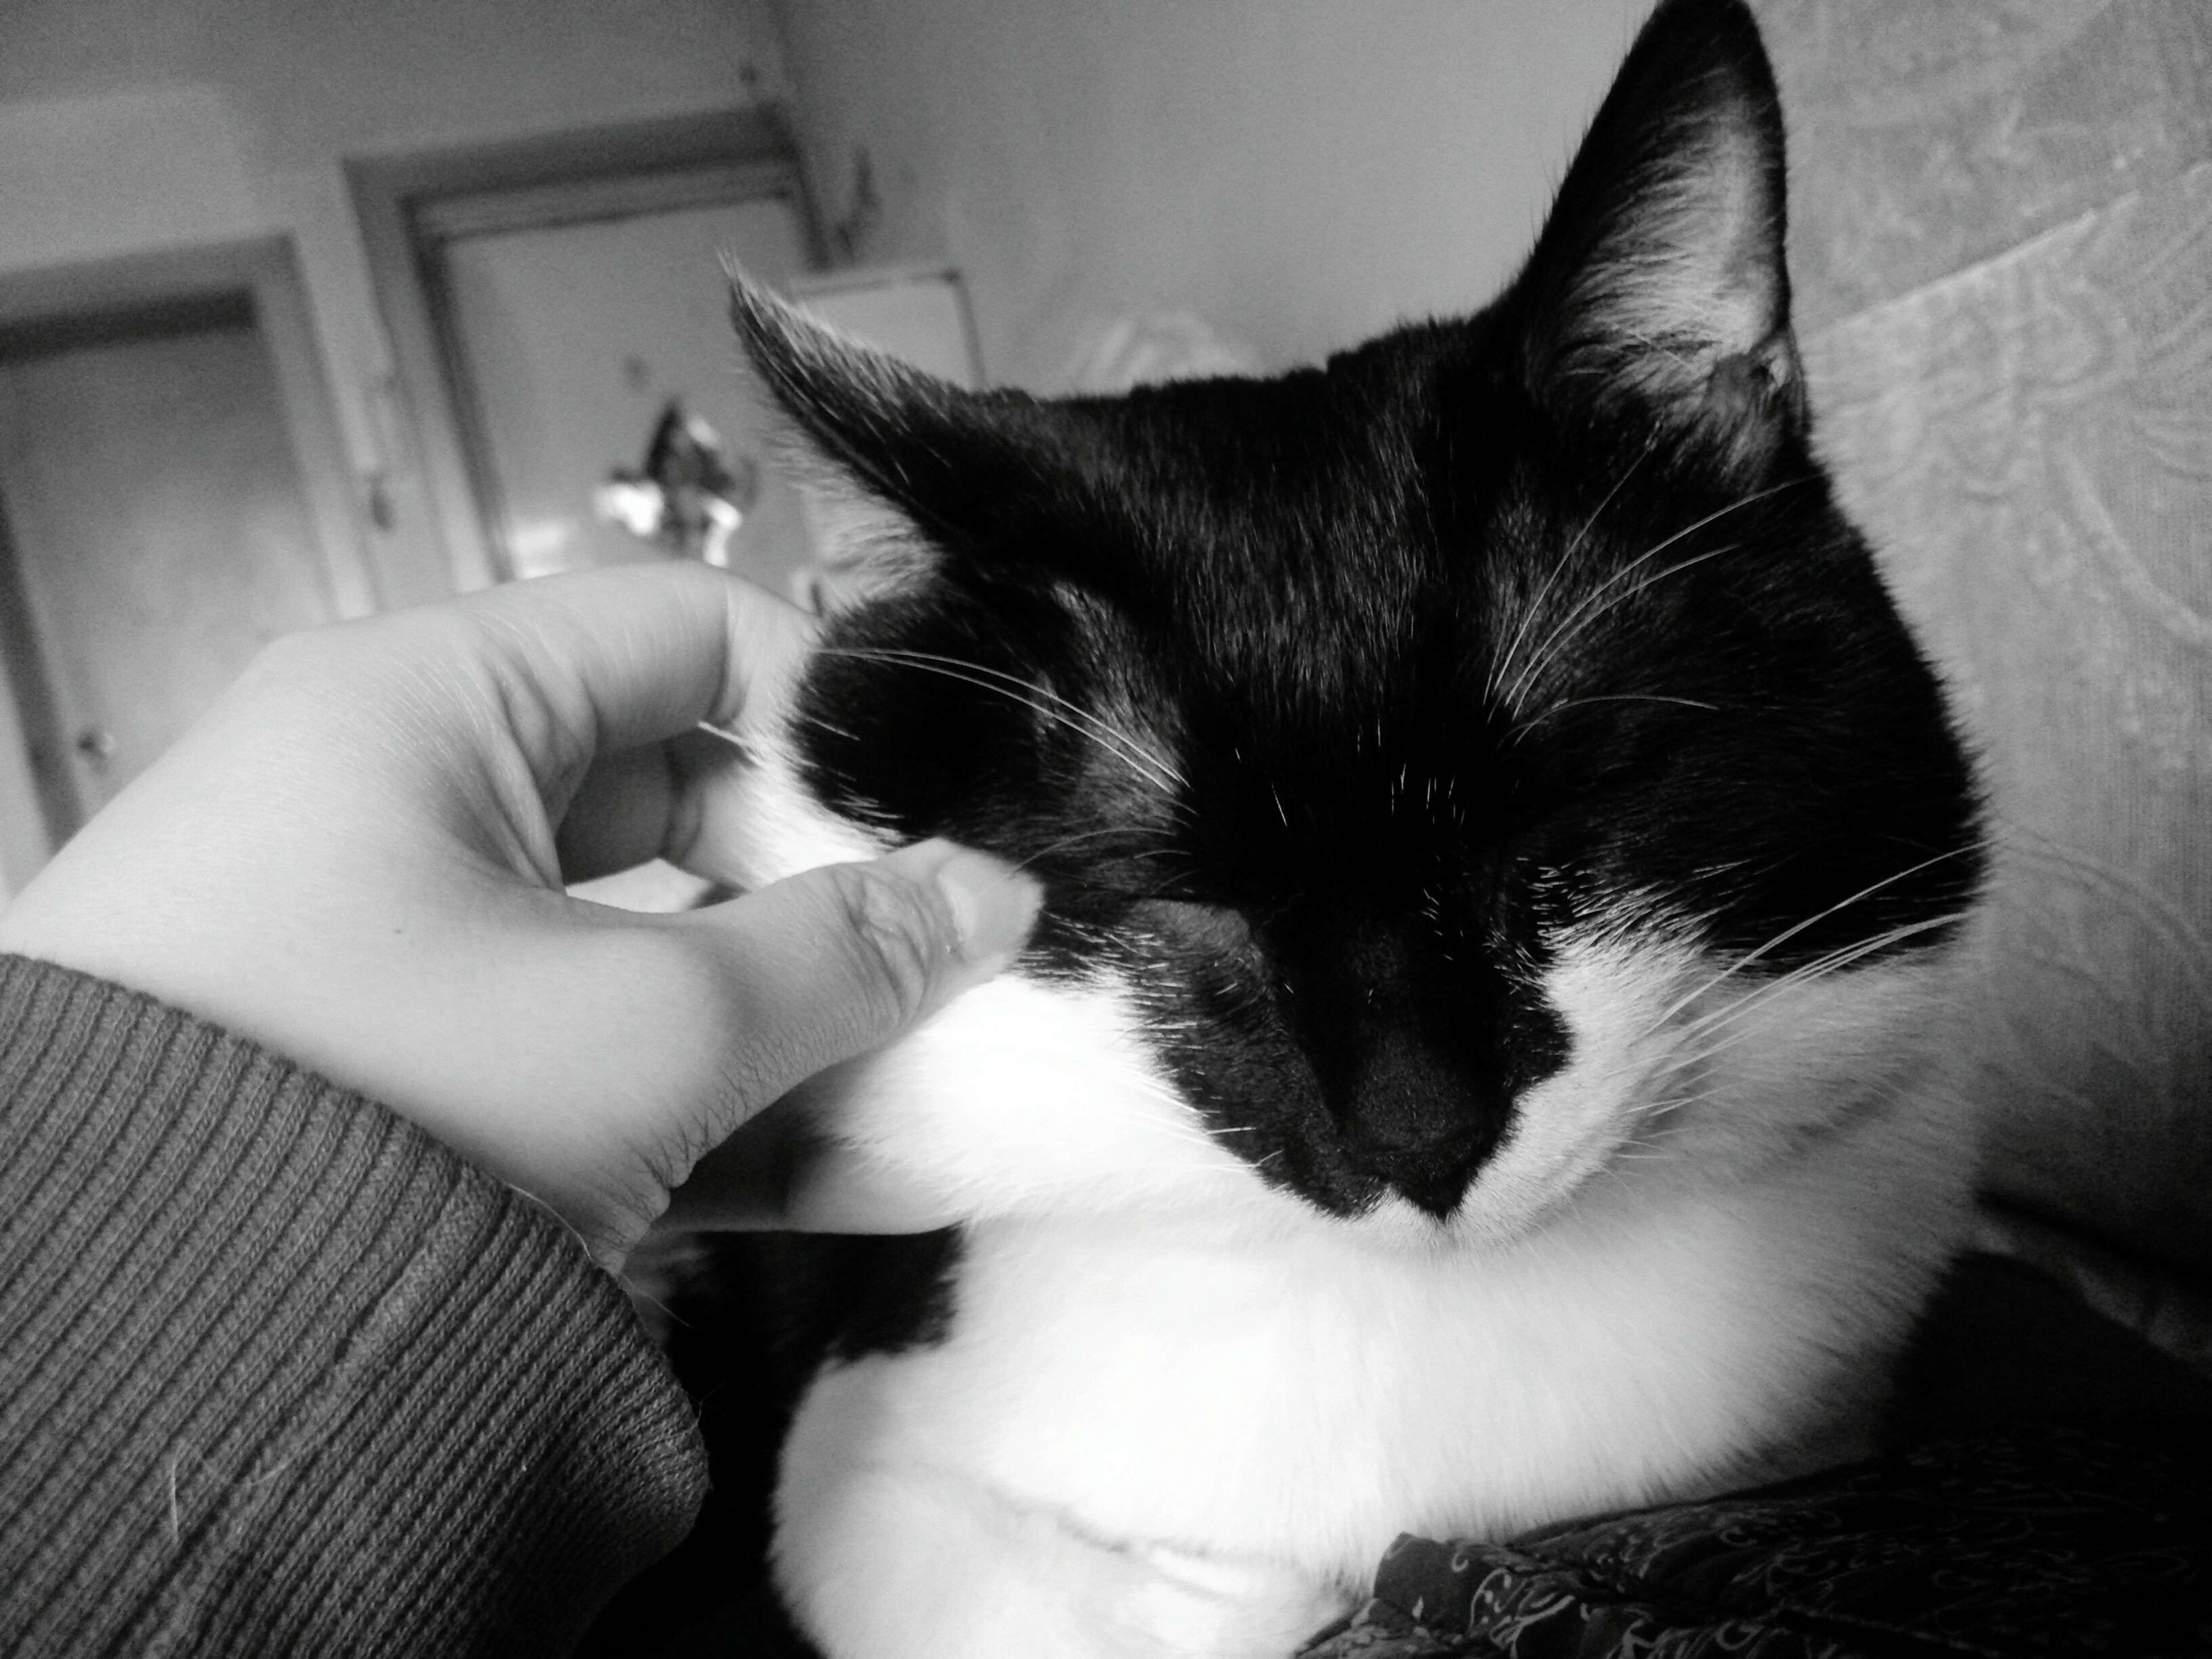 pets, domestic animals, one animal, animal themes, person, indoors, mammal, domestic cat, part of, holding, cat, unrecognizable person, home interior, close-up, human finger, dog, relaxation